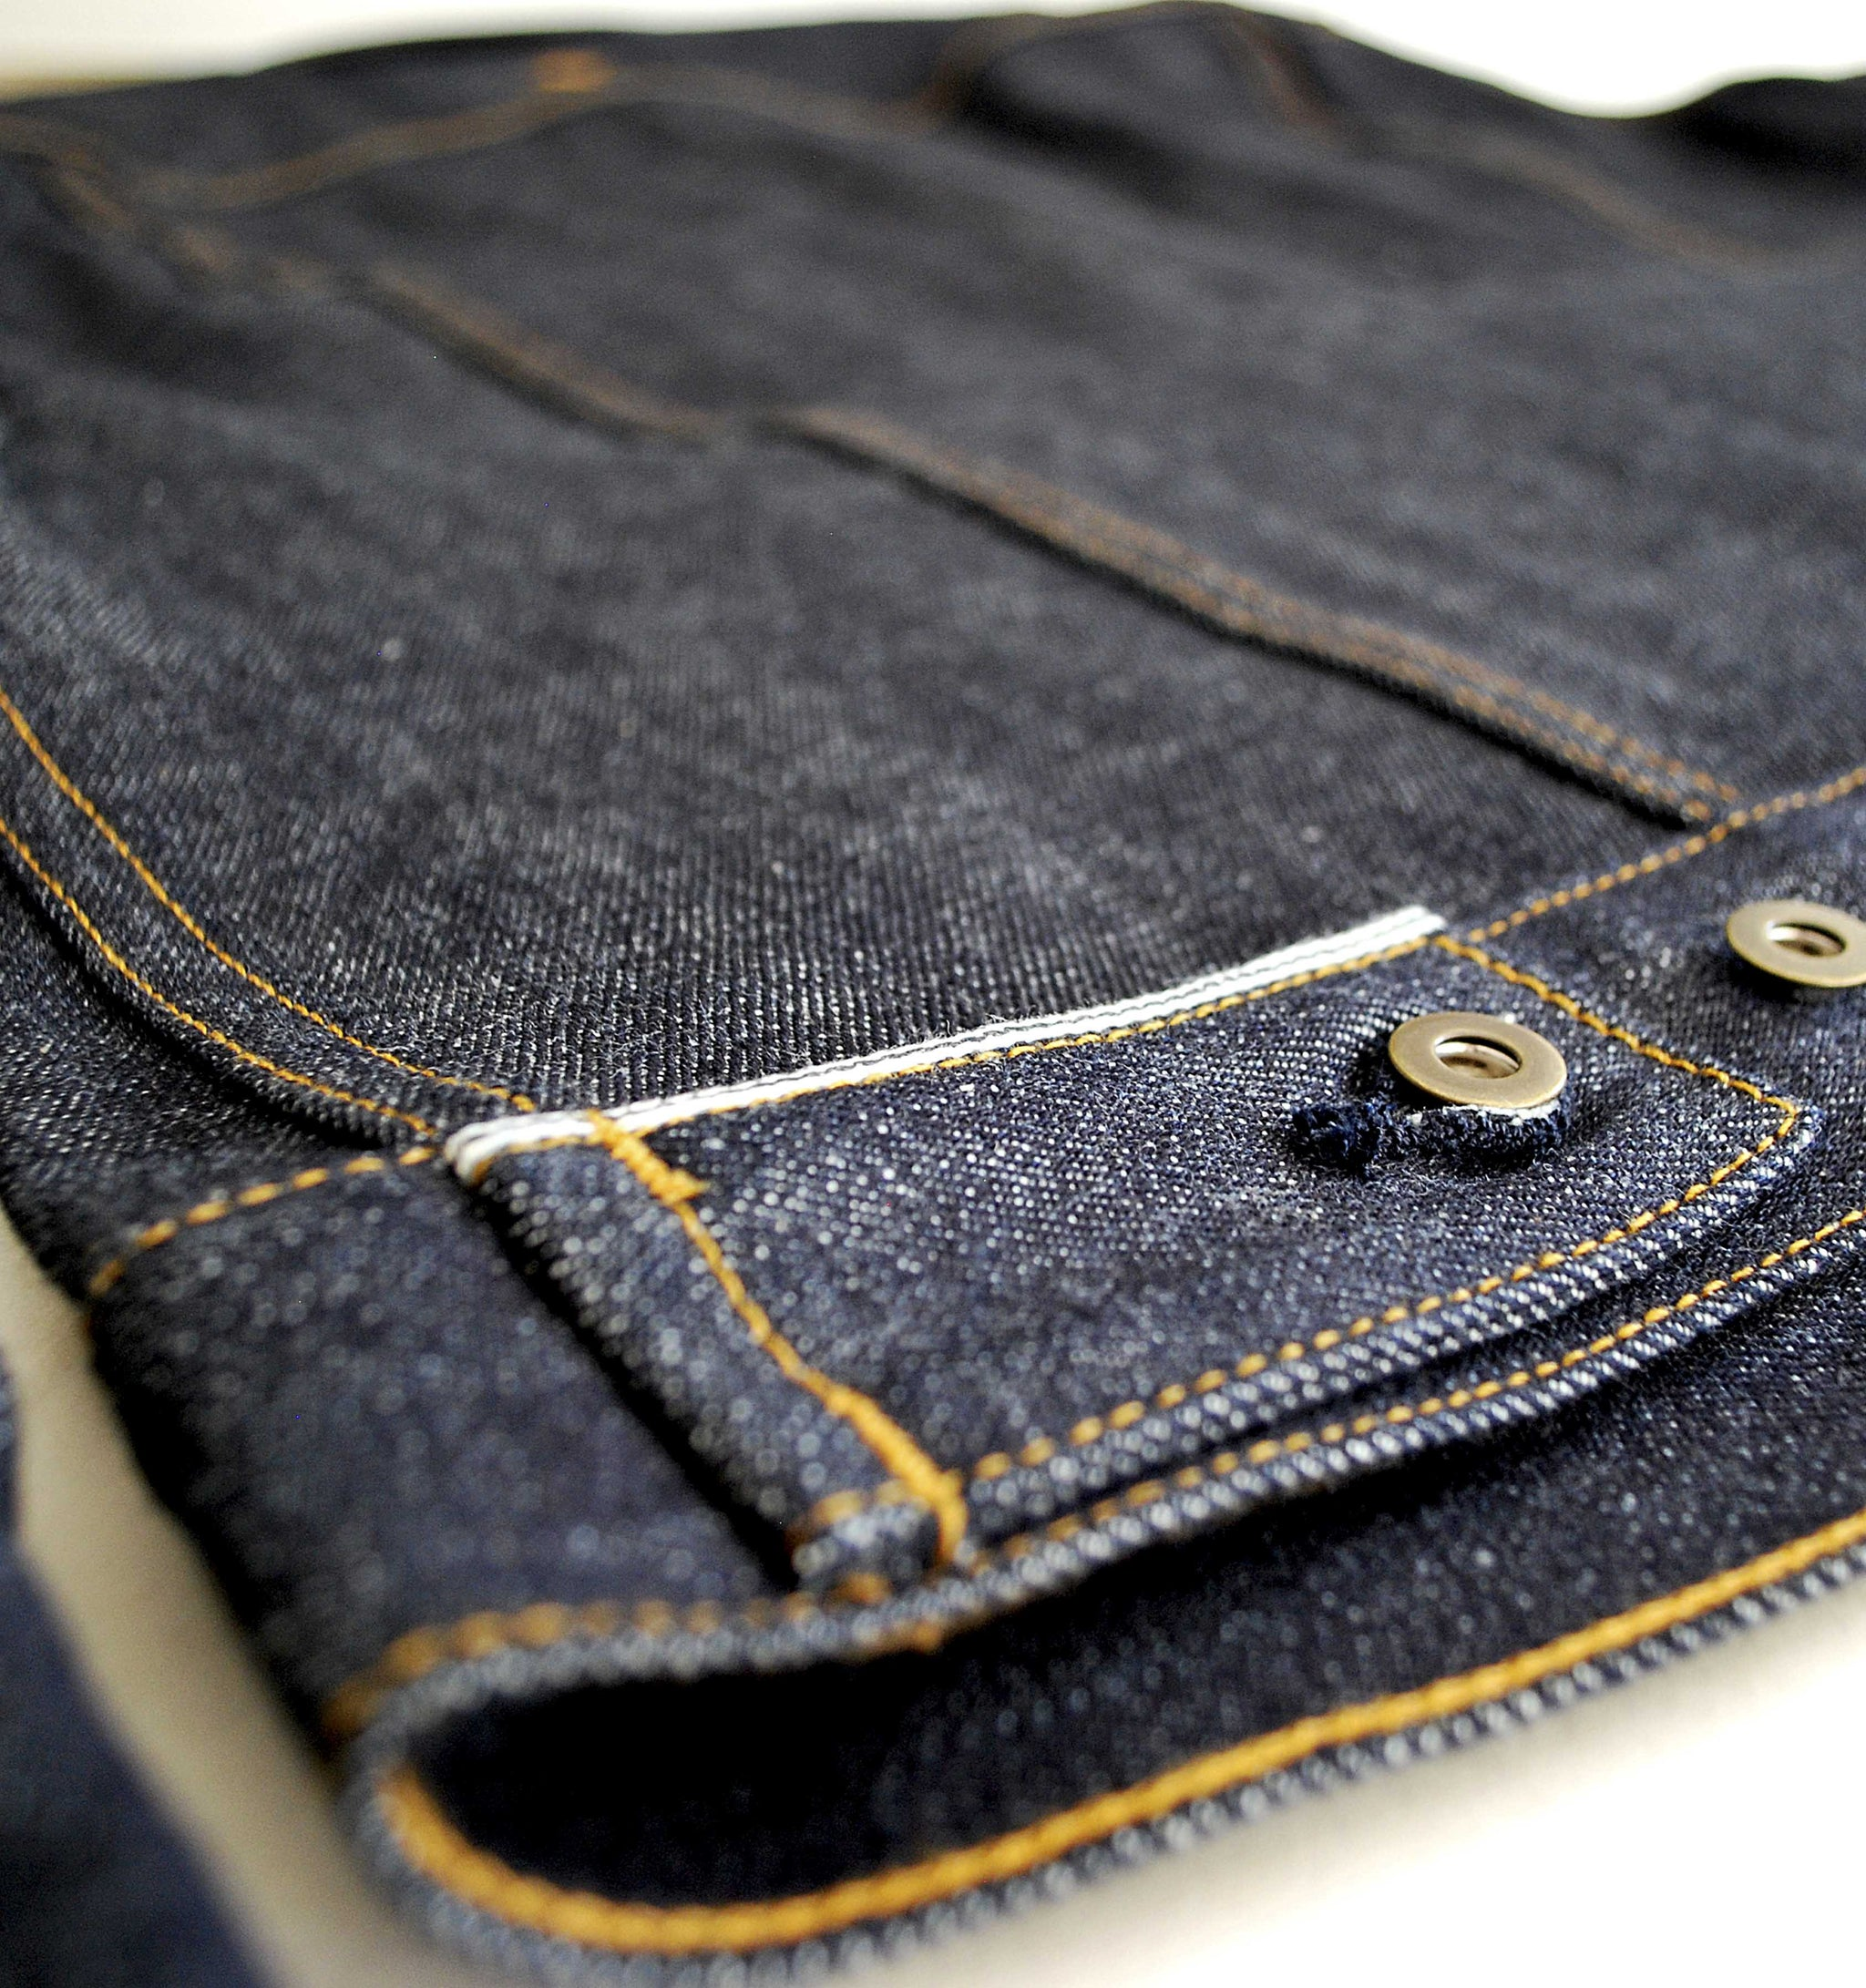 The Ltd. Edition Ironside 'Supernova' 15oz  Cone Mills Selvage Denim Jacket